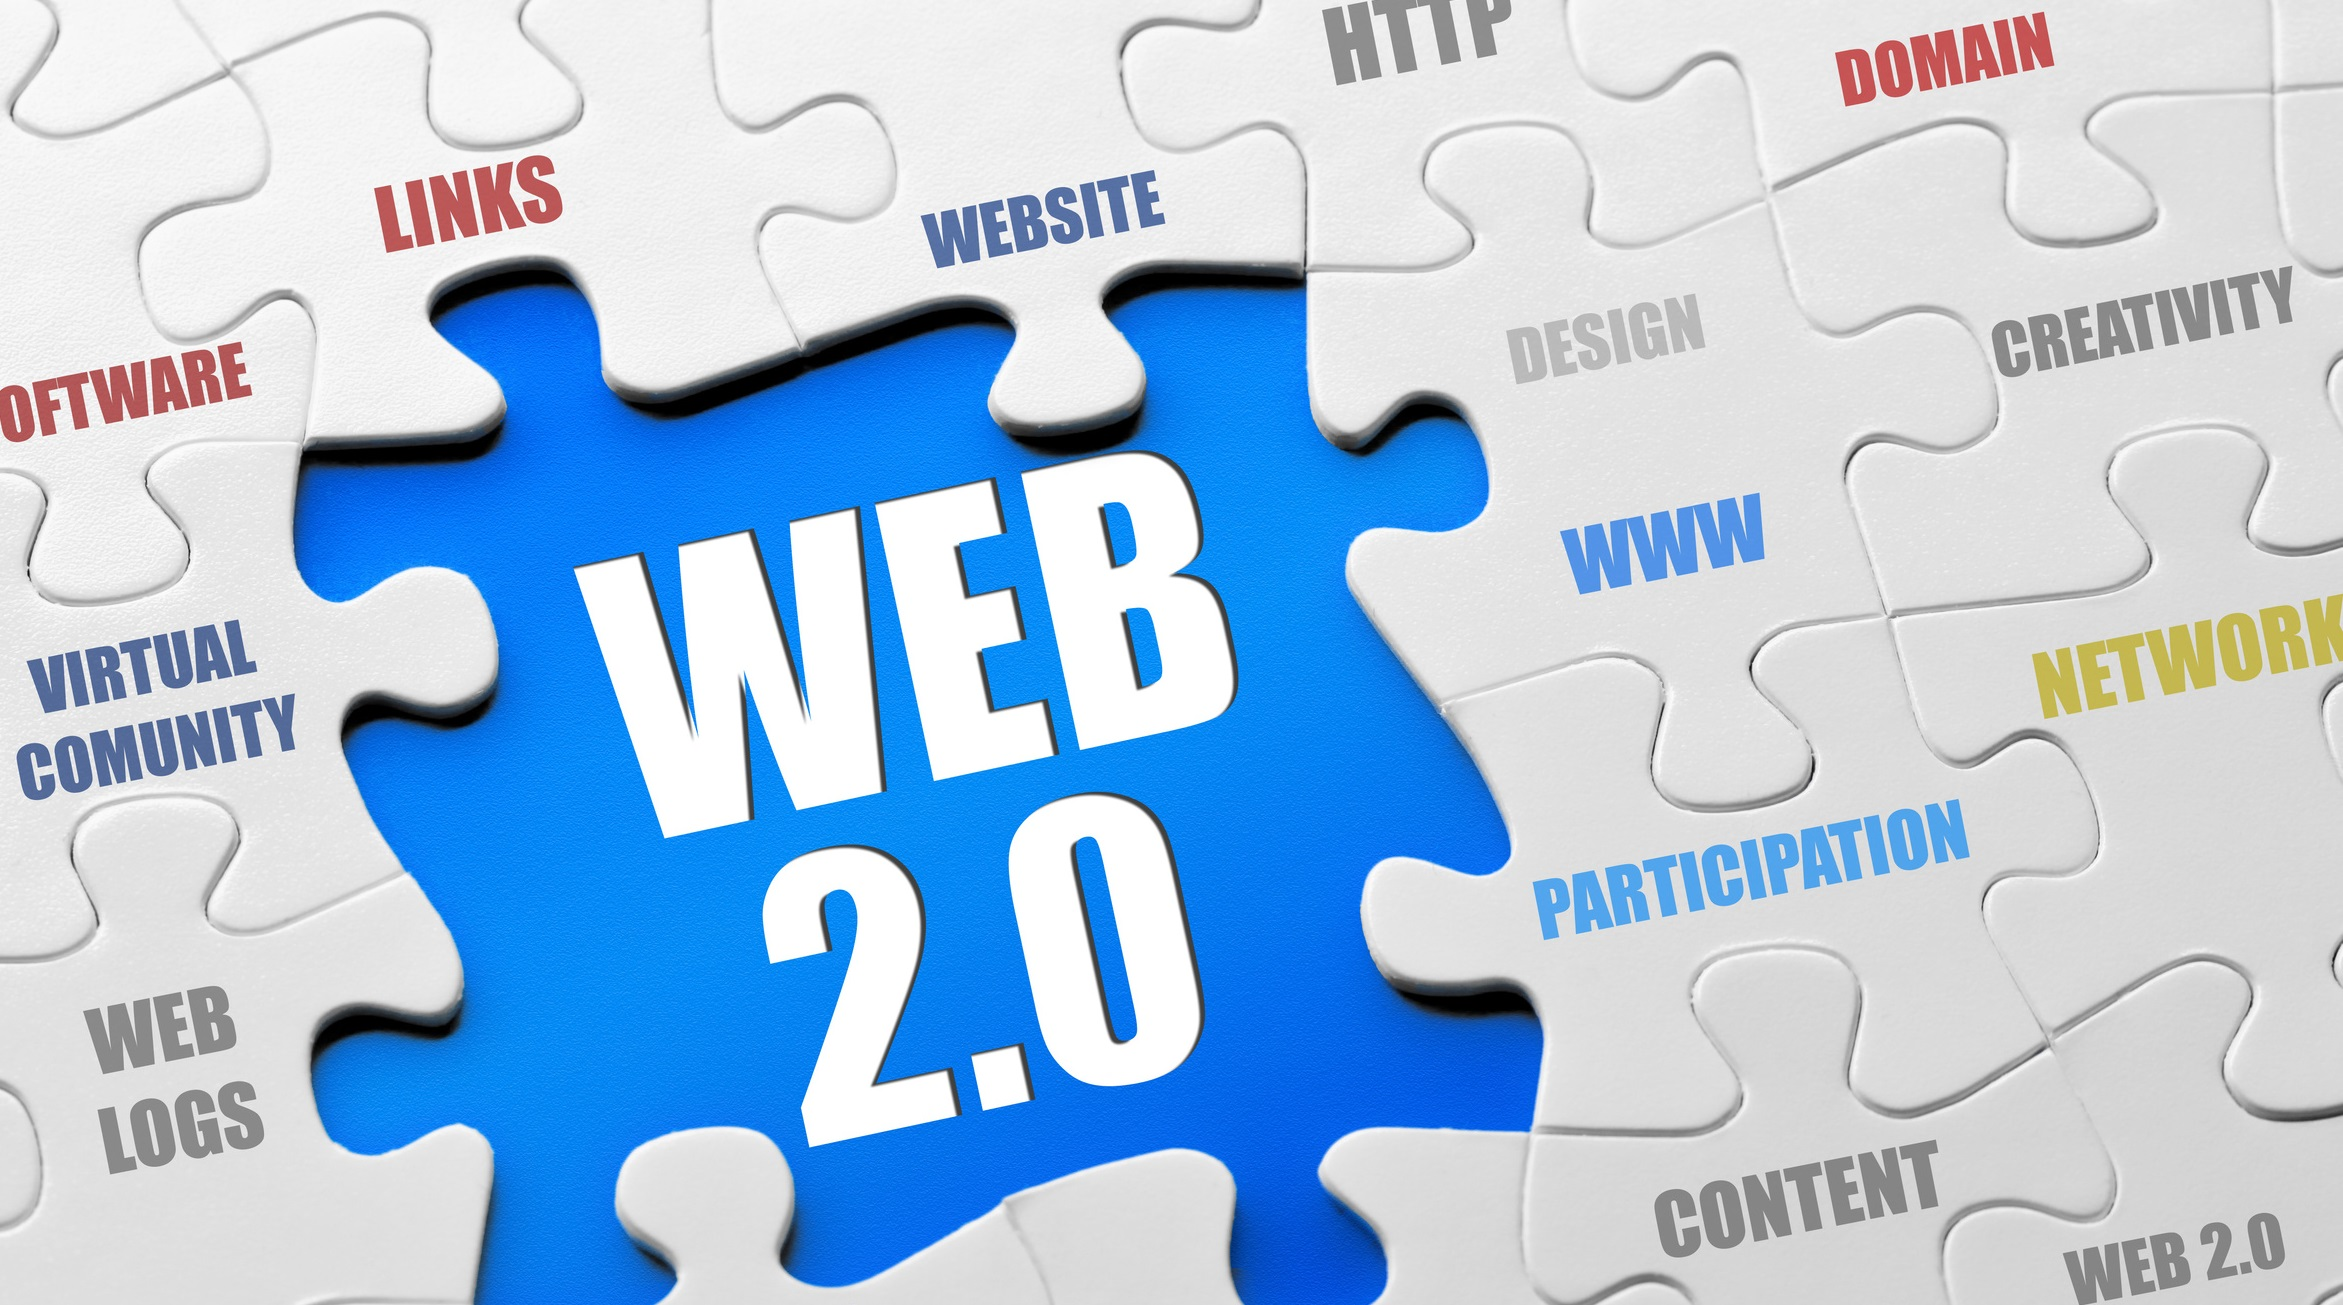 Rank your site with 30 Super Web 2.0 SEO Blogs contextual Blacklinks